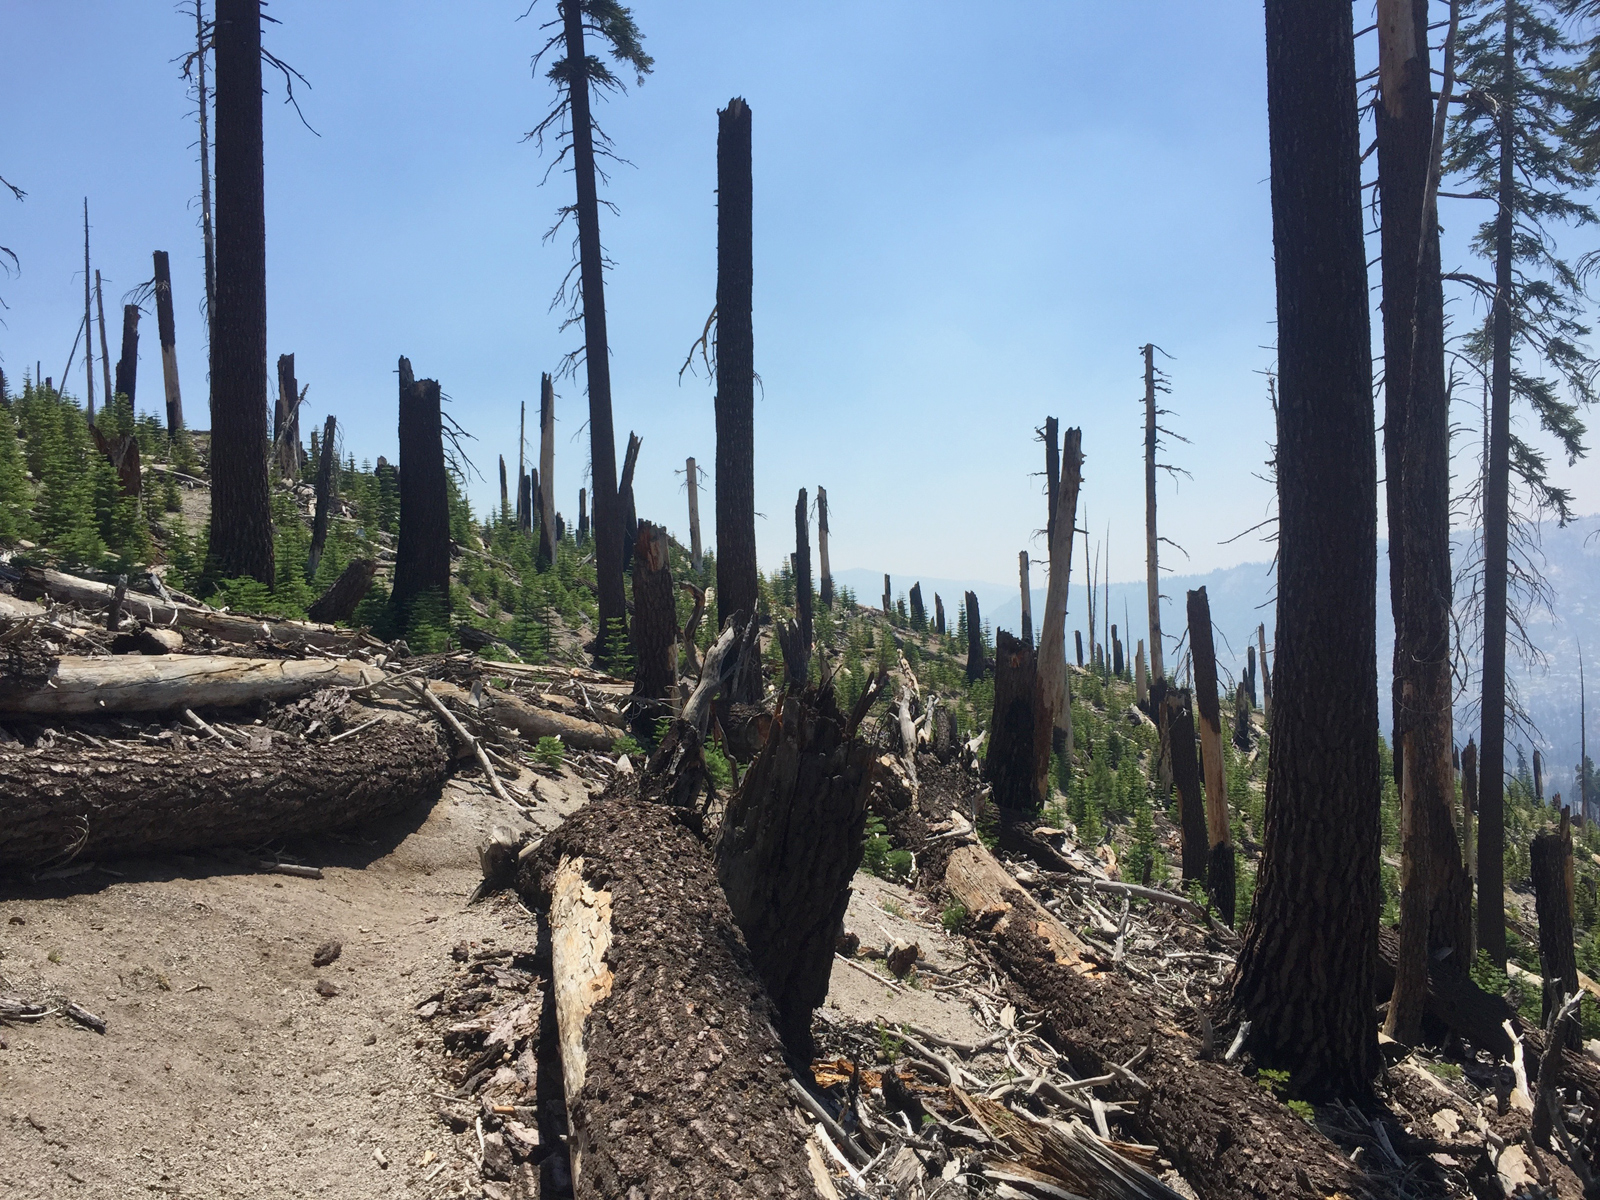 Anyone who has hiked south from Reds Meadow has hiked through this burn. It was a sobering way to end this section.